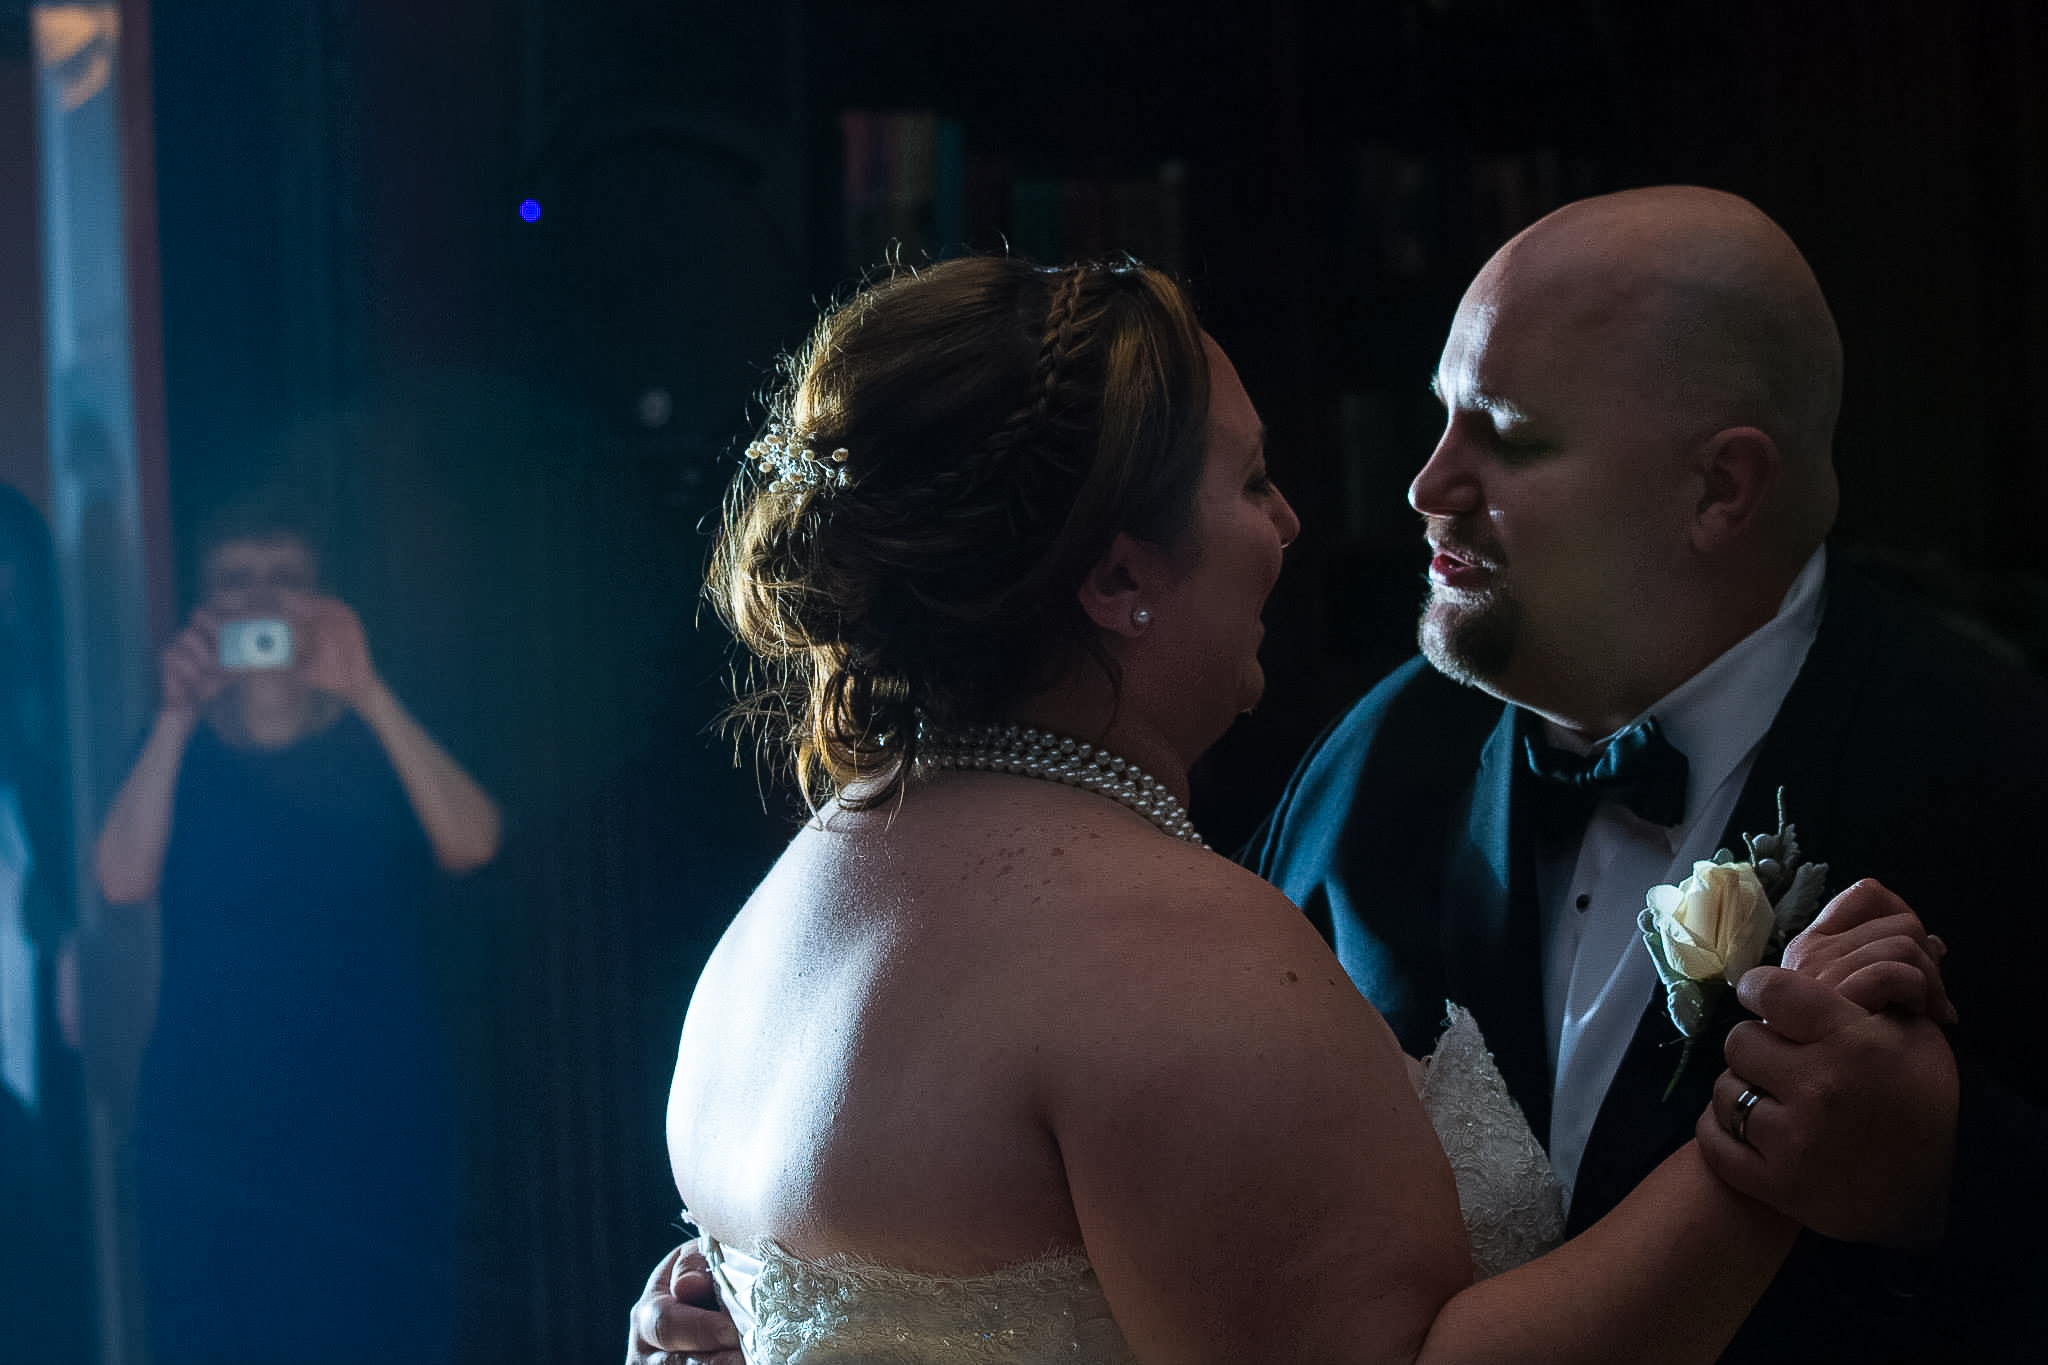 The first dance as husband and wife.